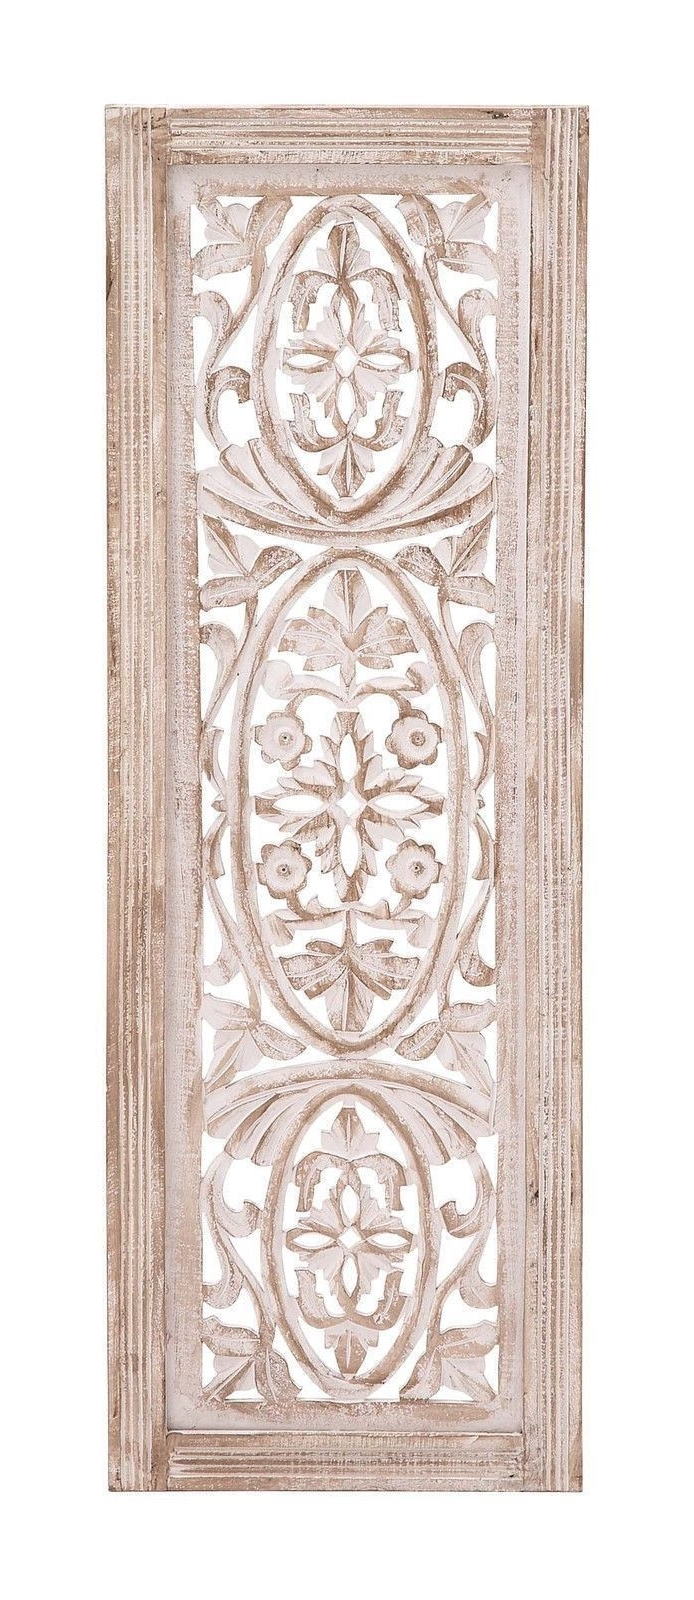 Most Recent White Washed Carved Wood Wall Art Panel Shabby Country Cottage Chic With Regard To Carved Wood Wall Art (View 14 of 15)